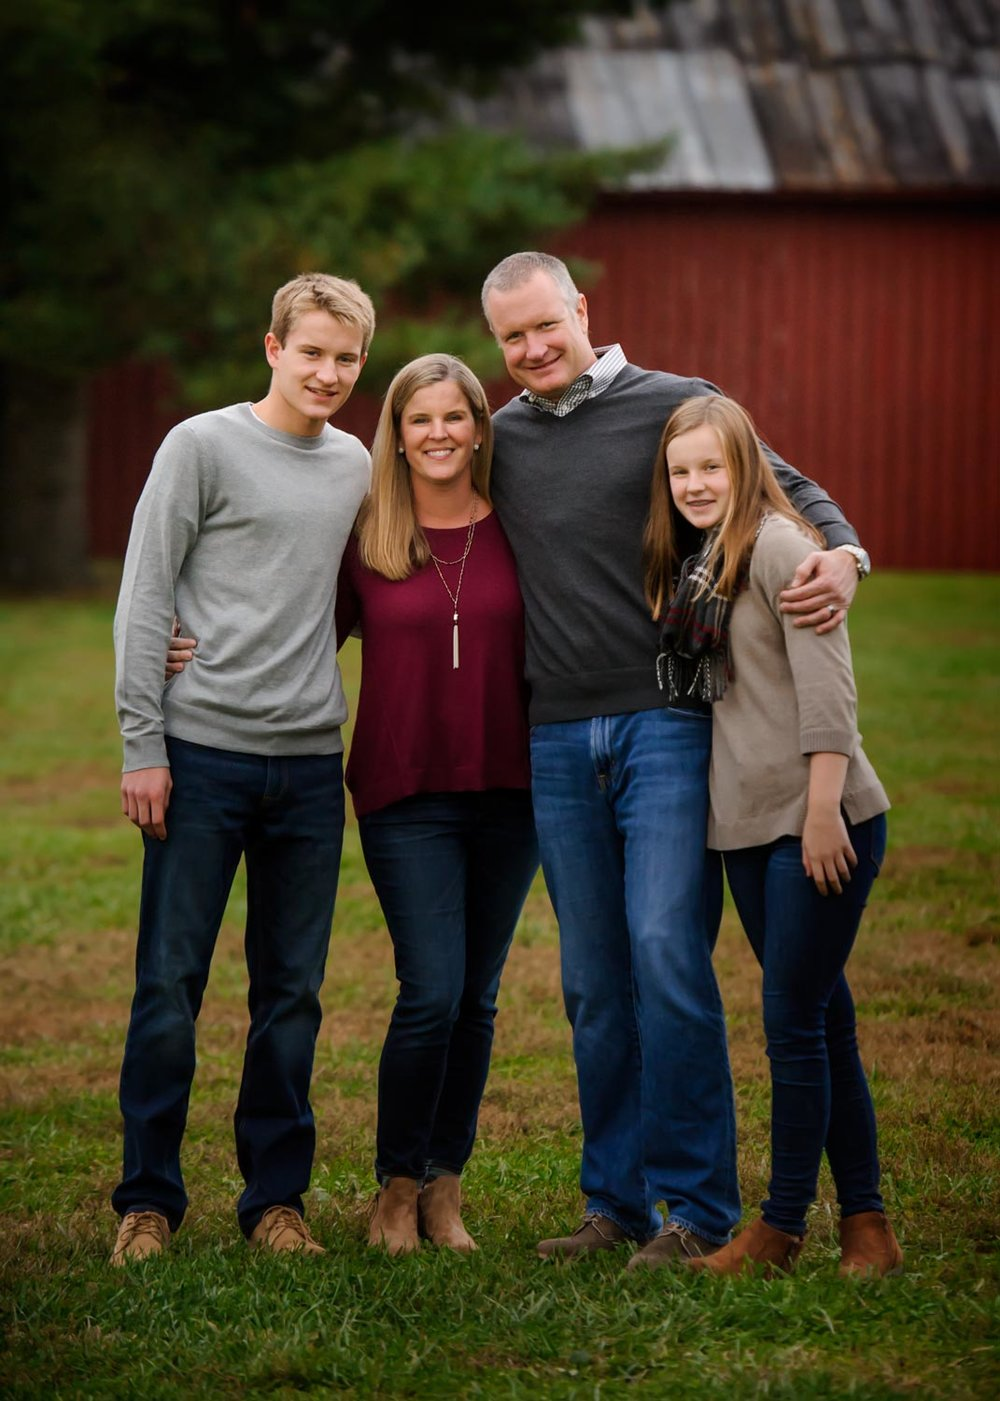 family_photography_by_Scott_Walz_studio_walz_Lexington_Ky078.jpg